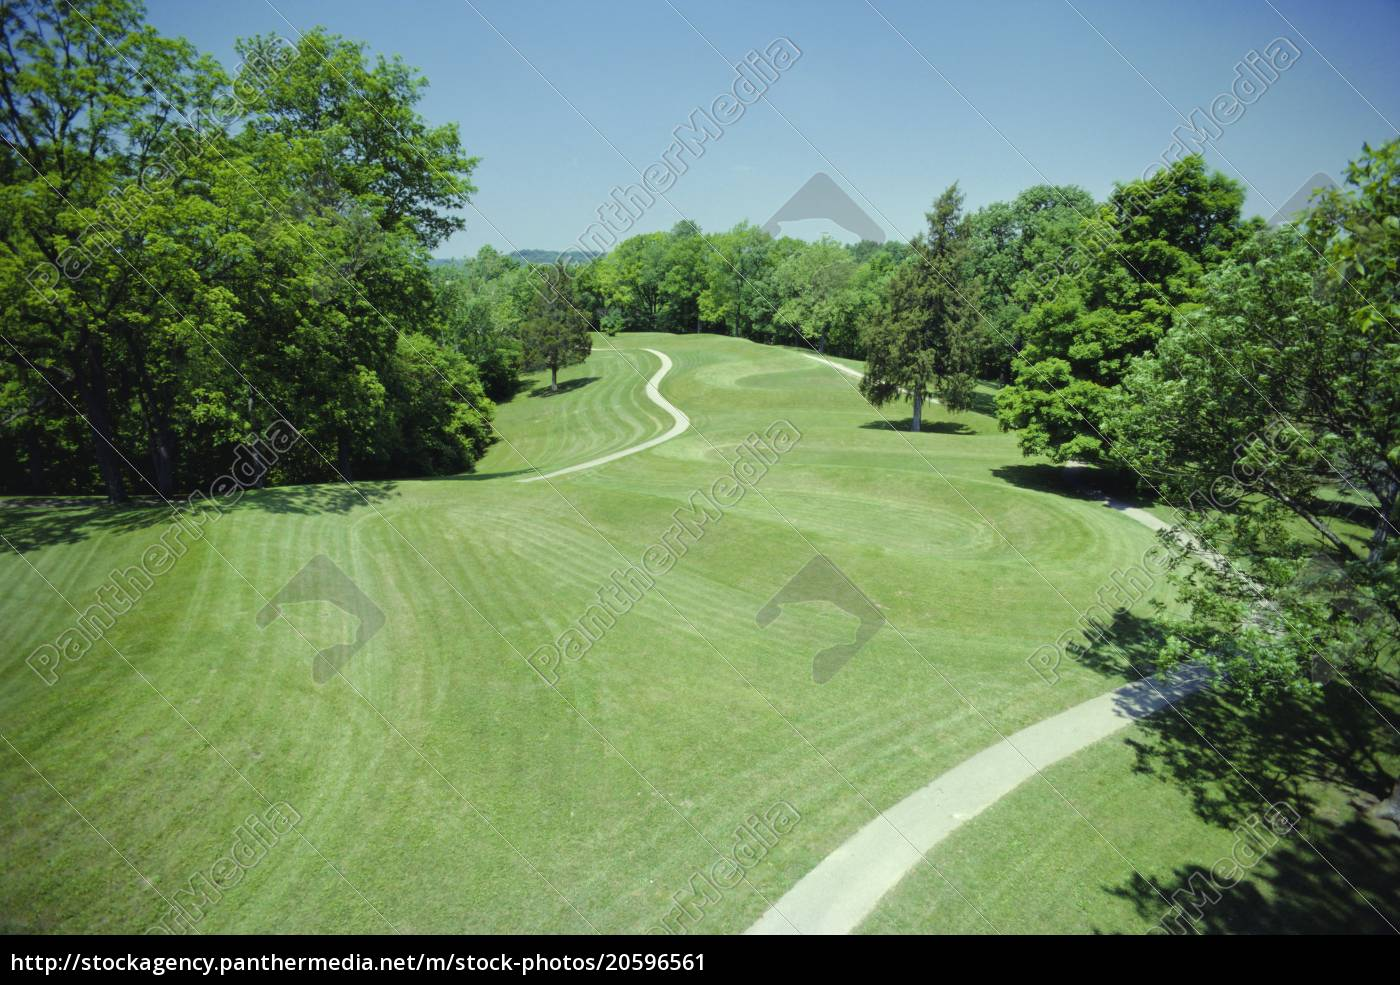 serpent, mound, of, the, native, american - 20596561